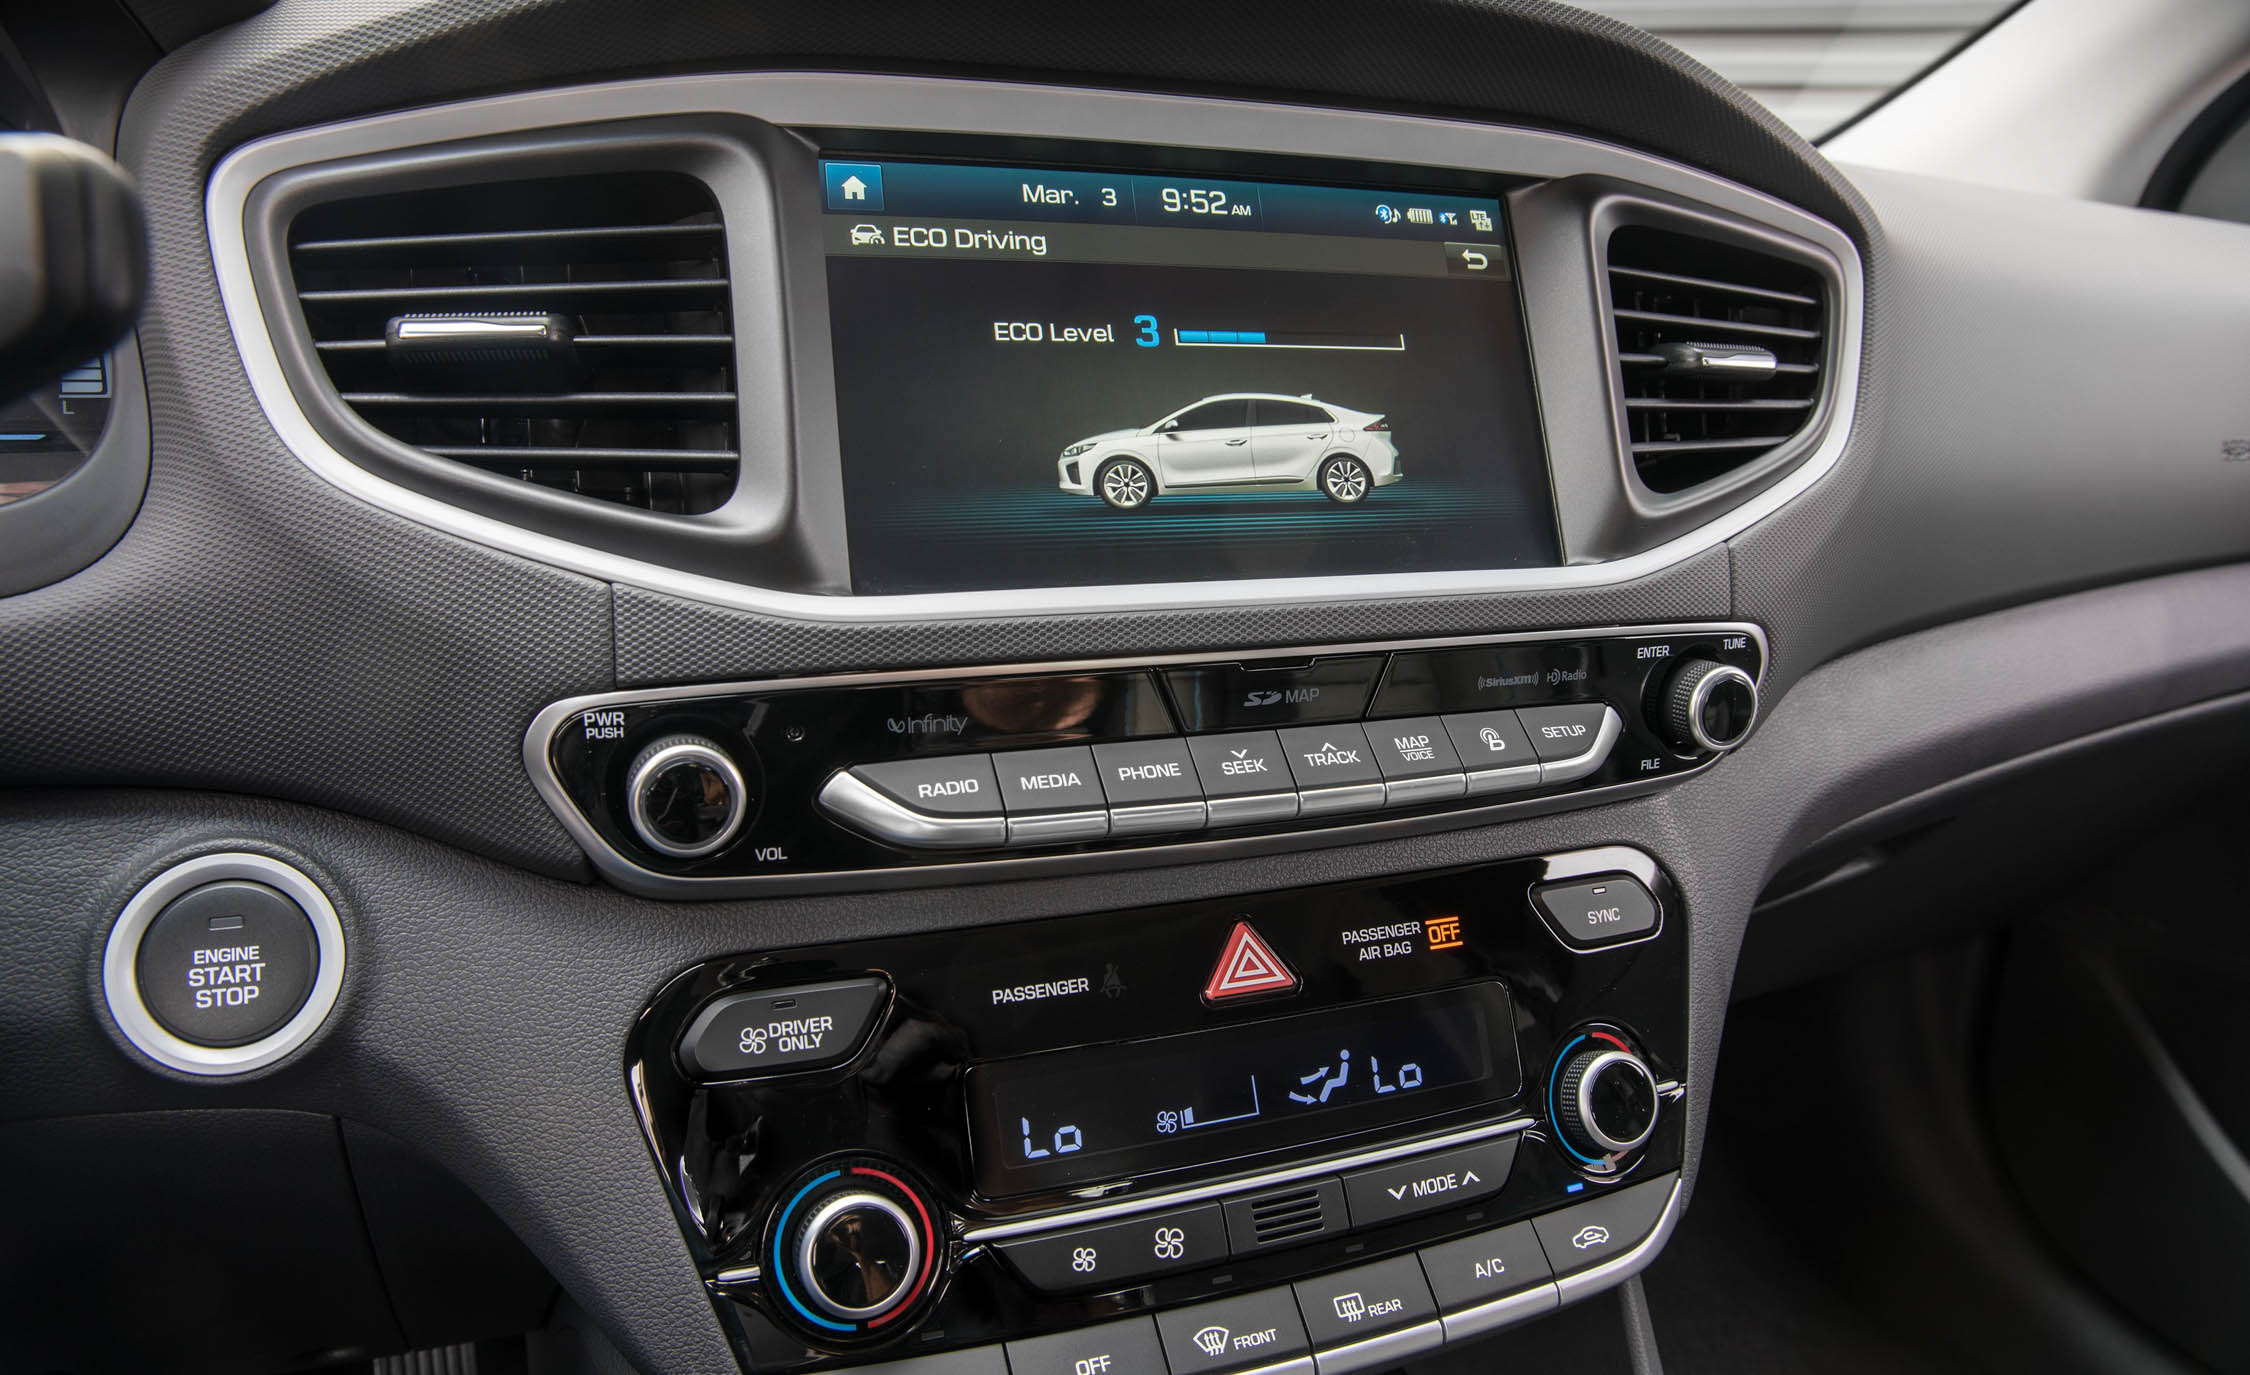 2017 Hyundai Ioniq Hybrid Interior View Center Screen And Climate Control (Photo 54 of 67)